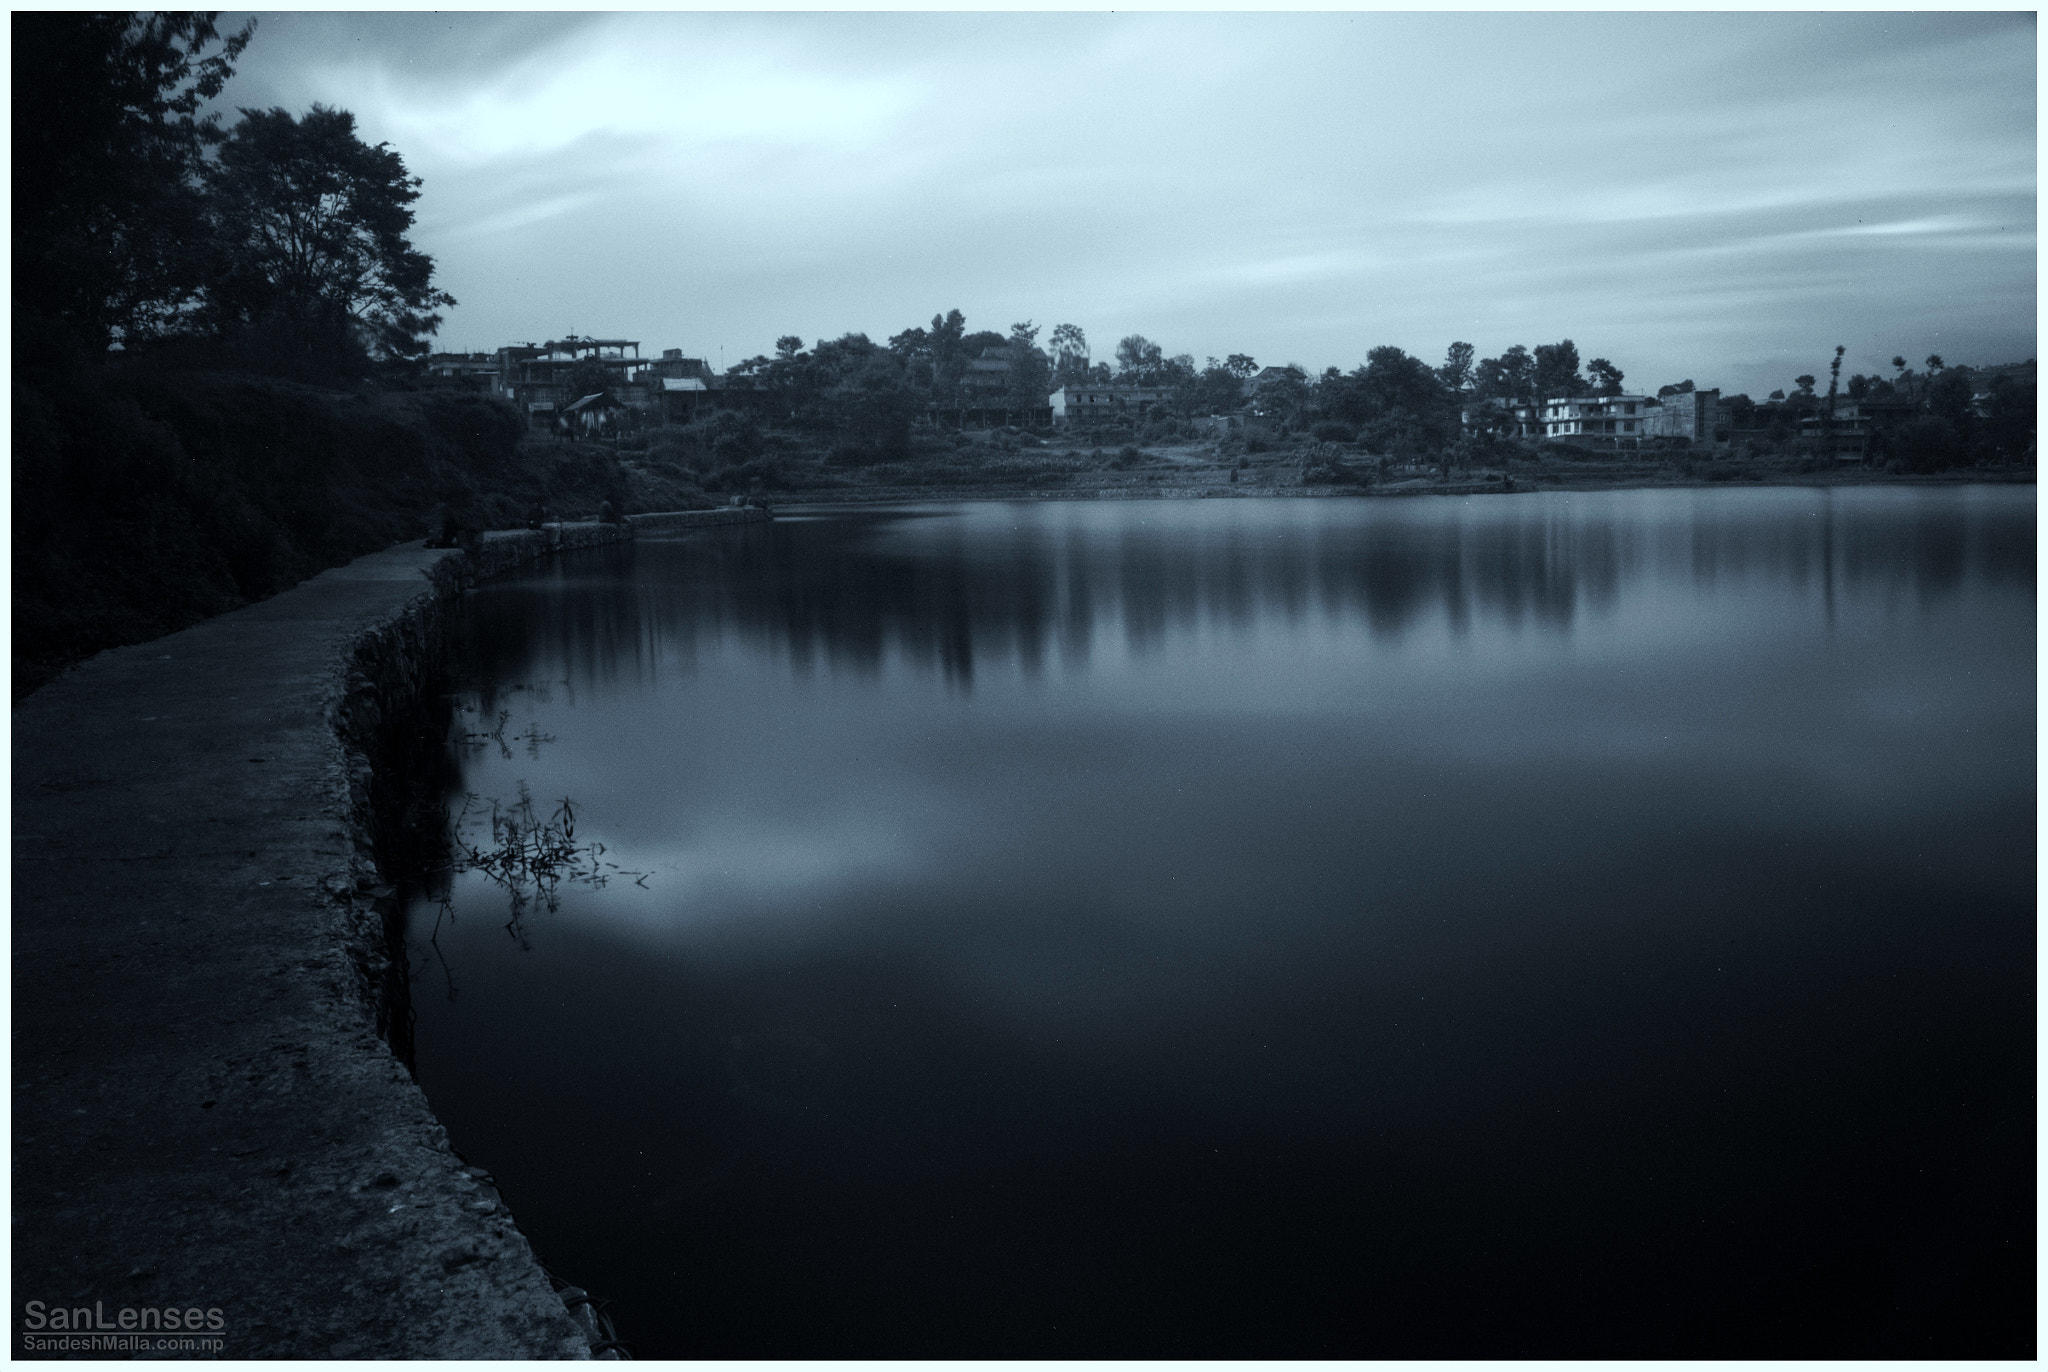 Photograph Calm n' Quiet by Sandesh Malla on 500px